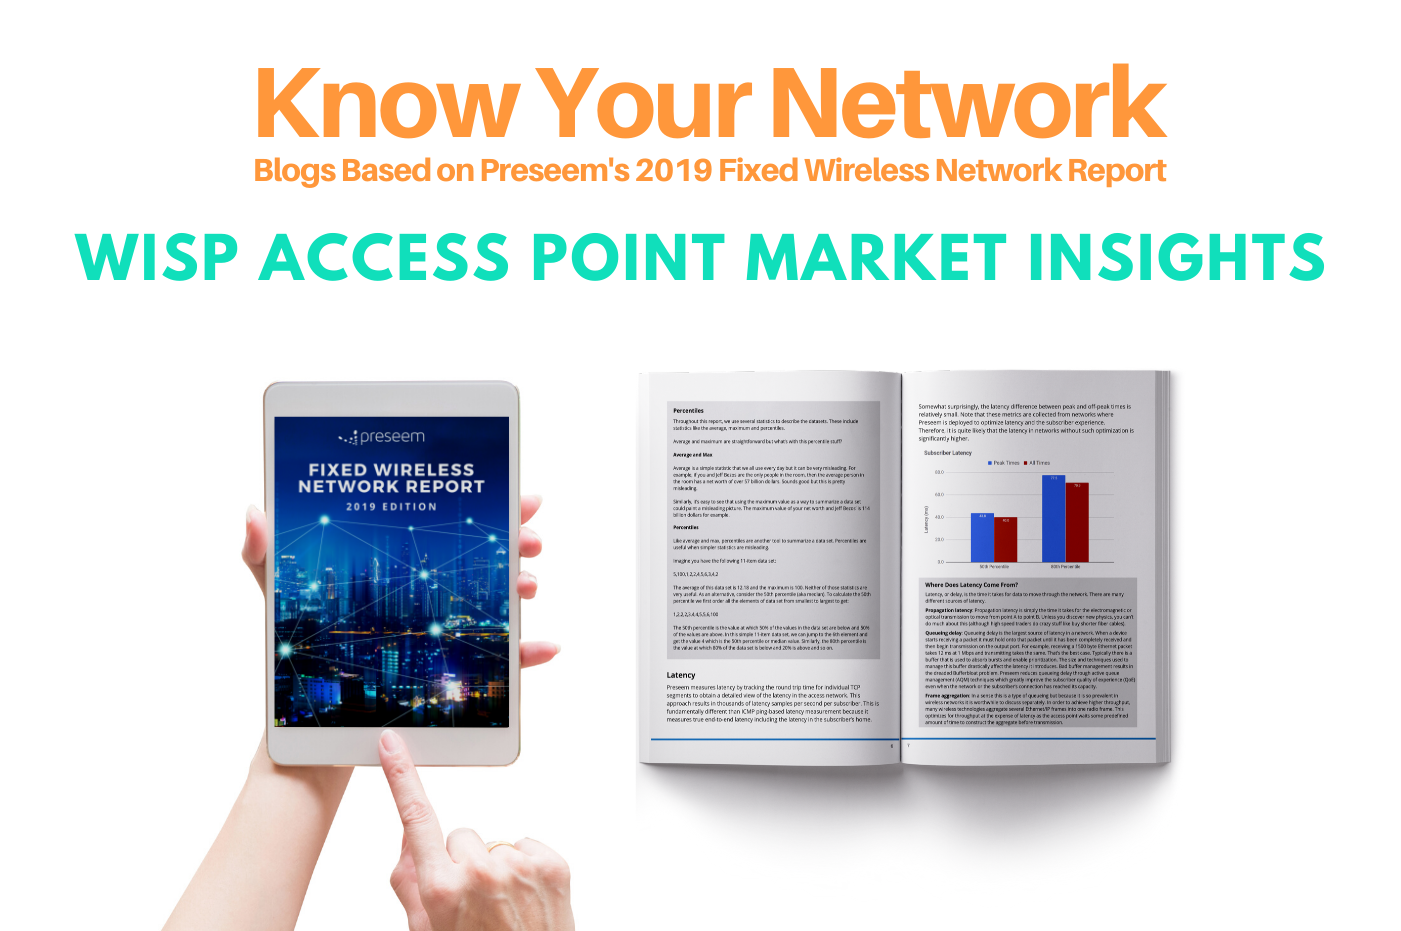 WISP Access Point Market Insights 2019